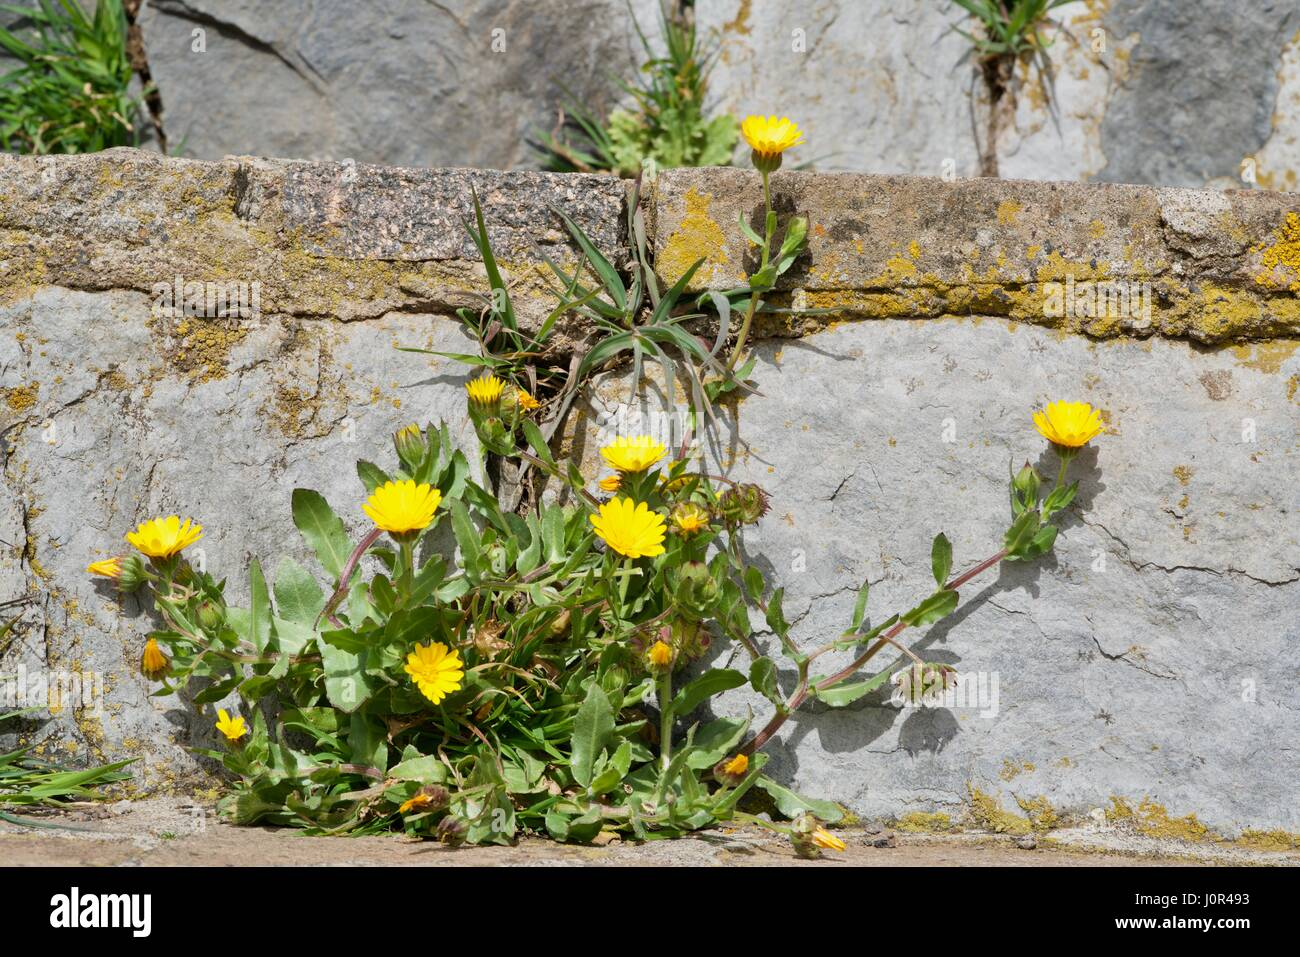 pallensis maritima in front of a wall - Stock Image